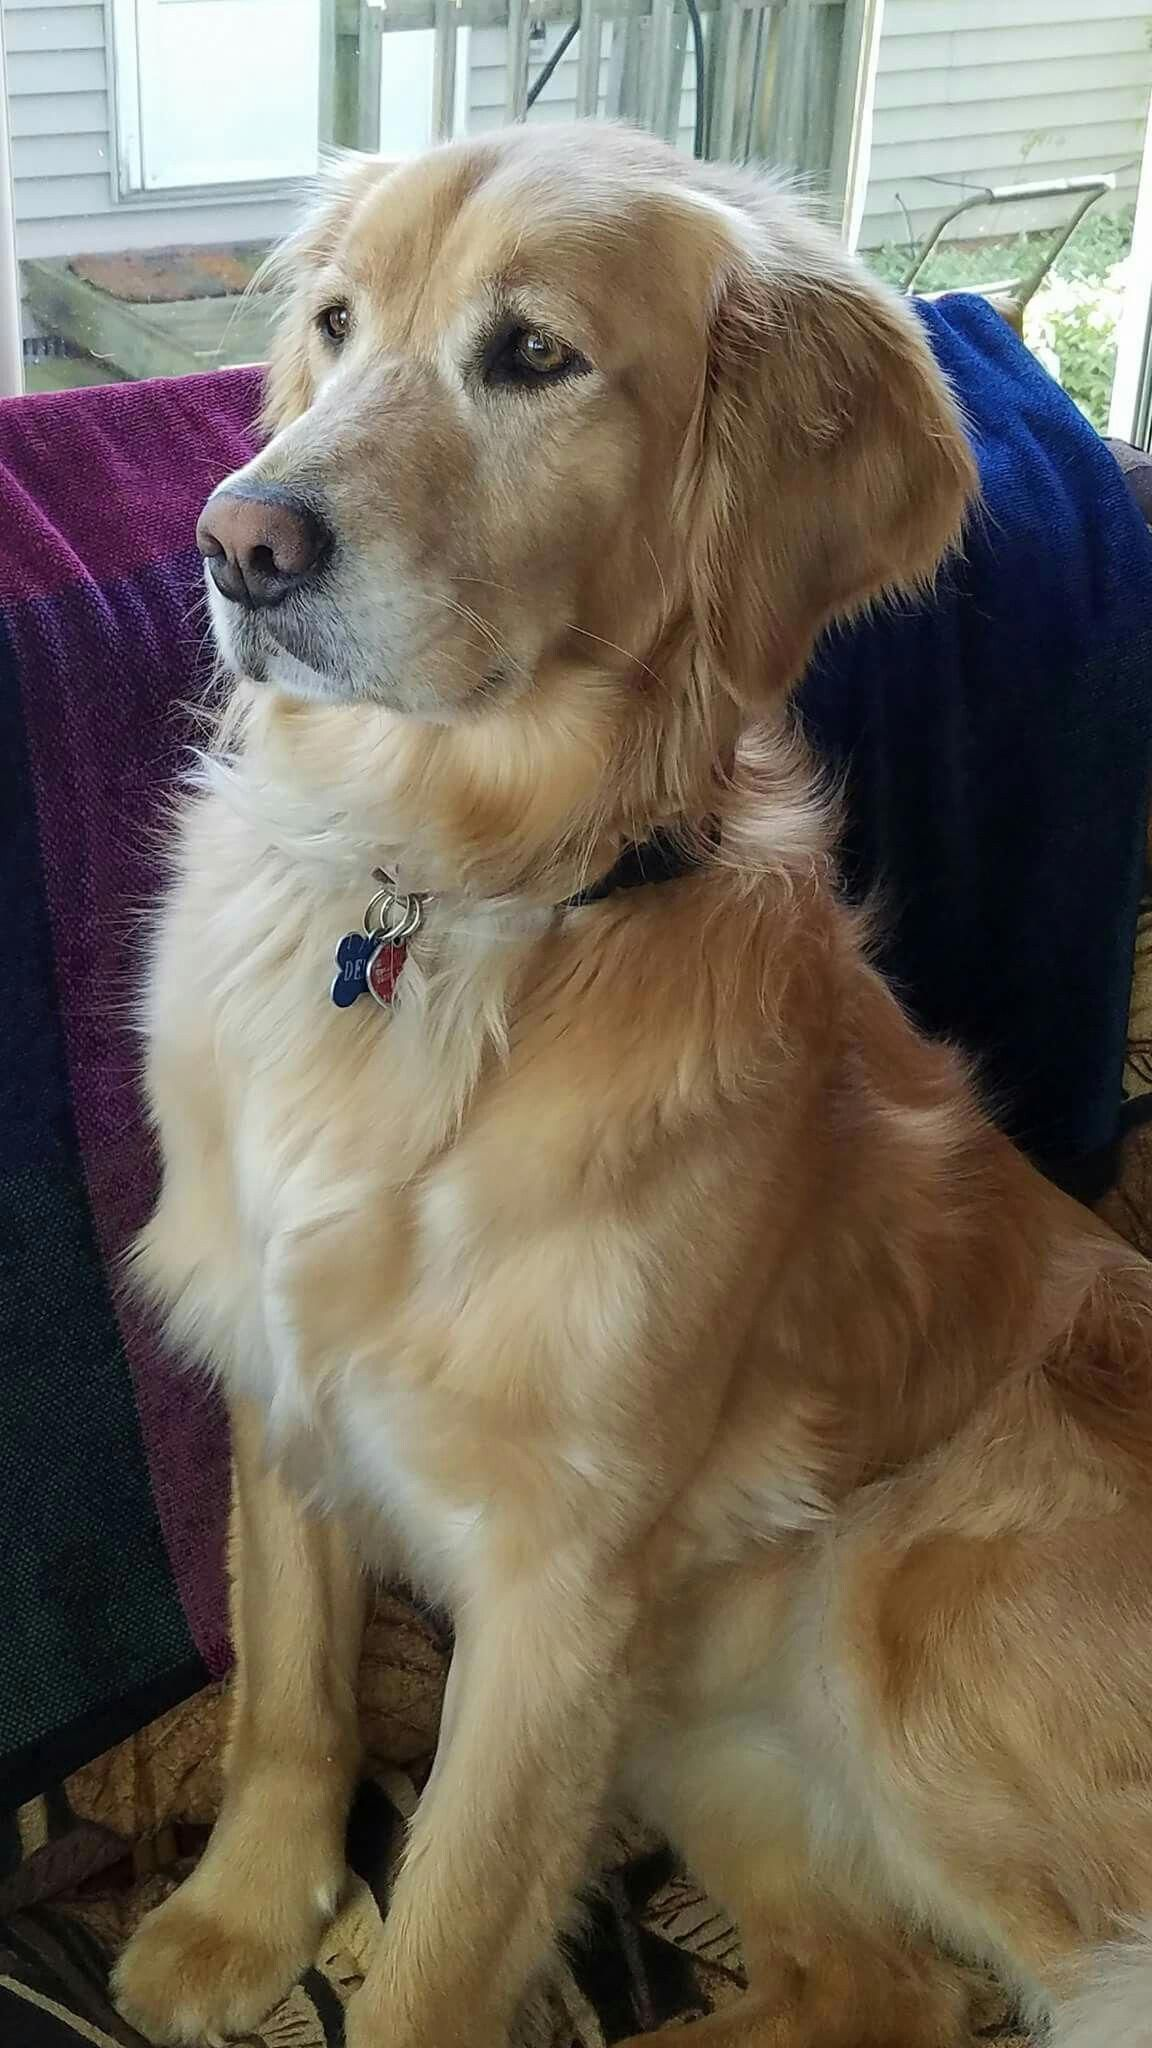 The Most Beautiful And The Best Dog In The World Is A Golden